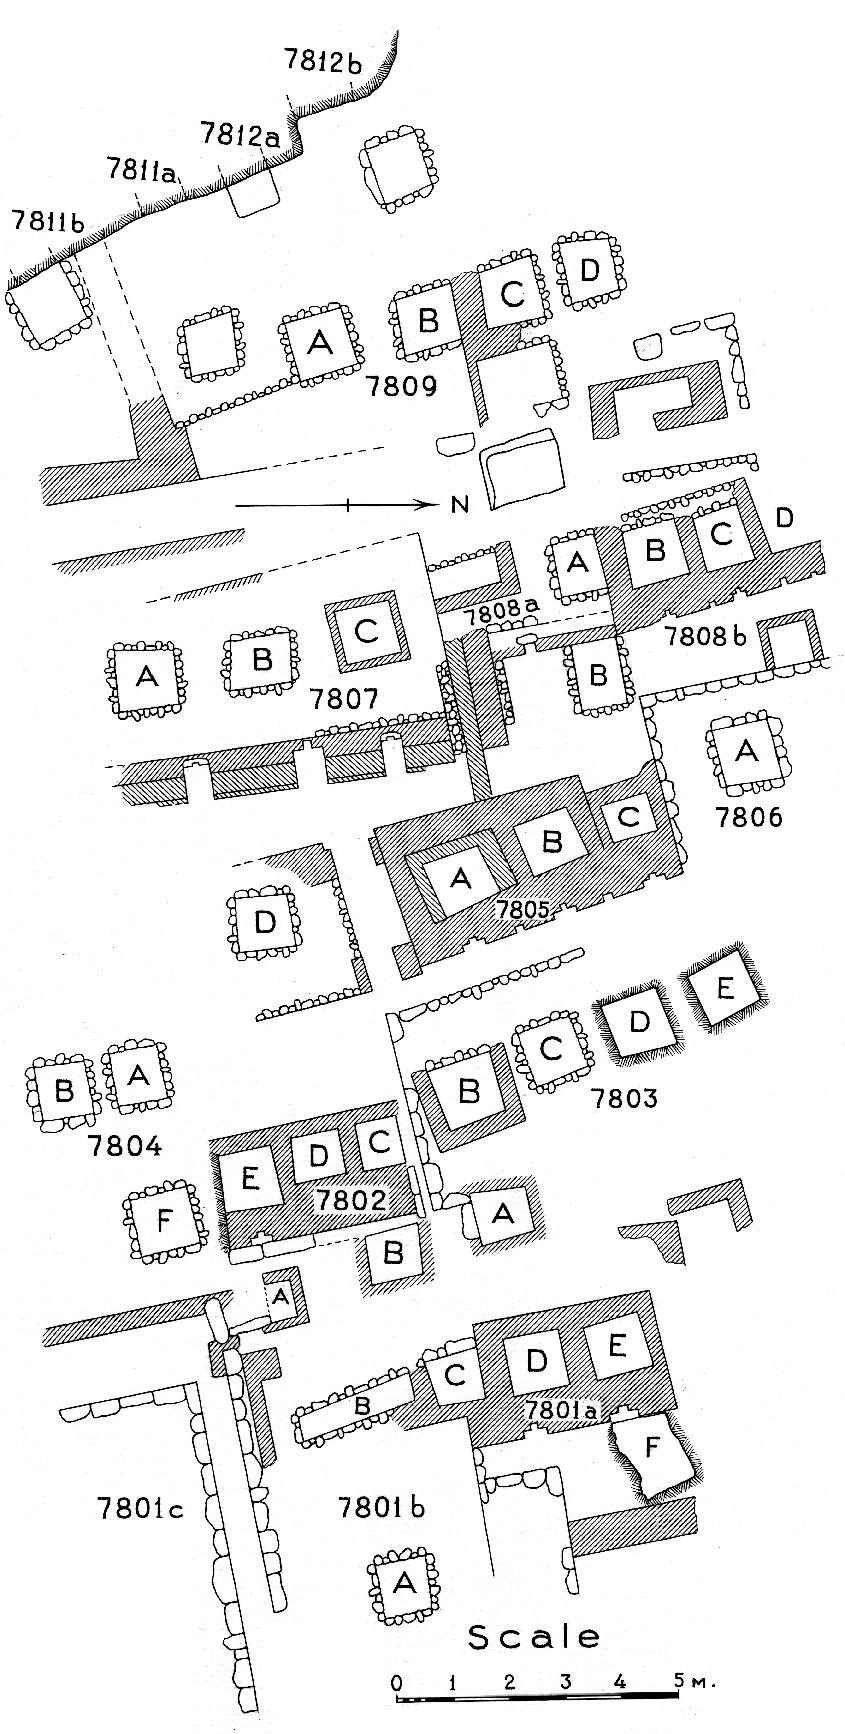 Maps and plans: Plan of cemetery G 7000: G 7800s (1 of 2)